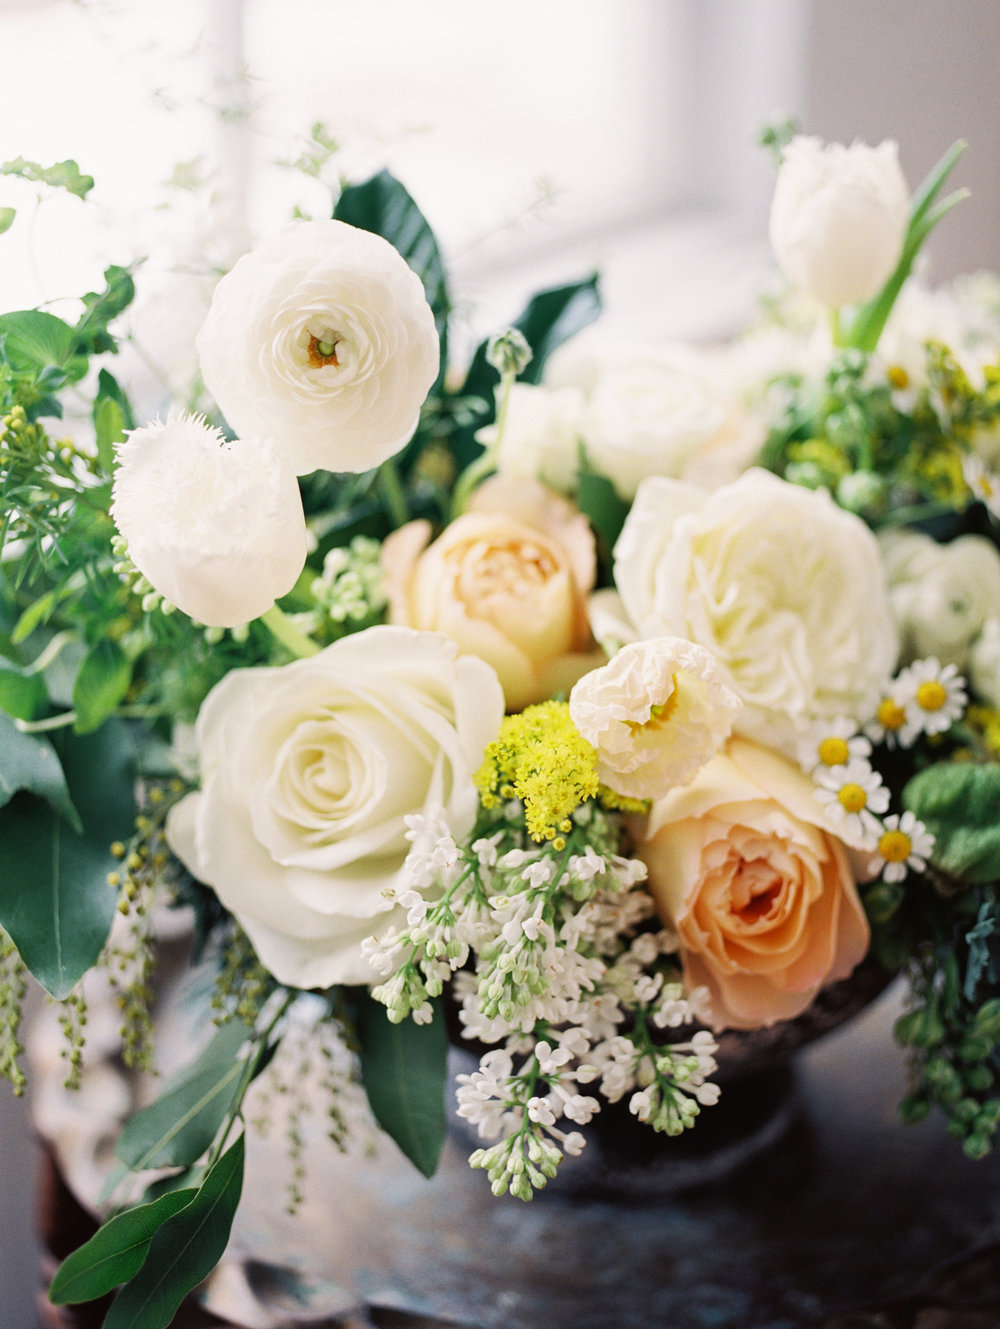 Traveling Wedding Florist With A Natural And Organic Design Foraged